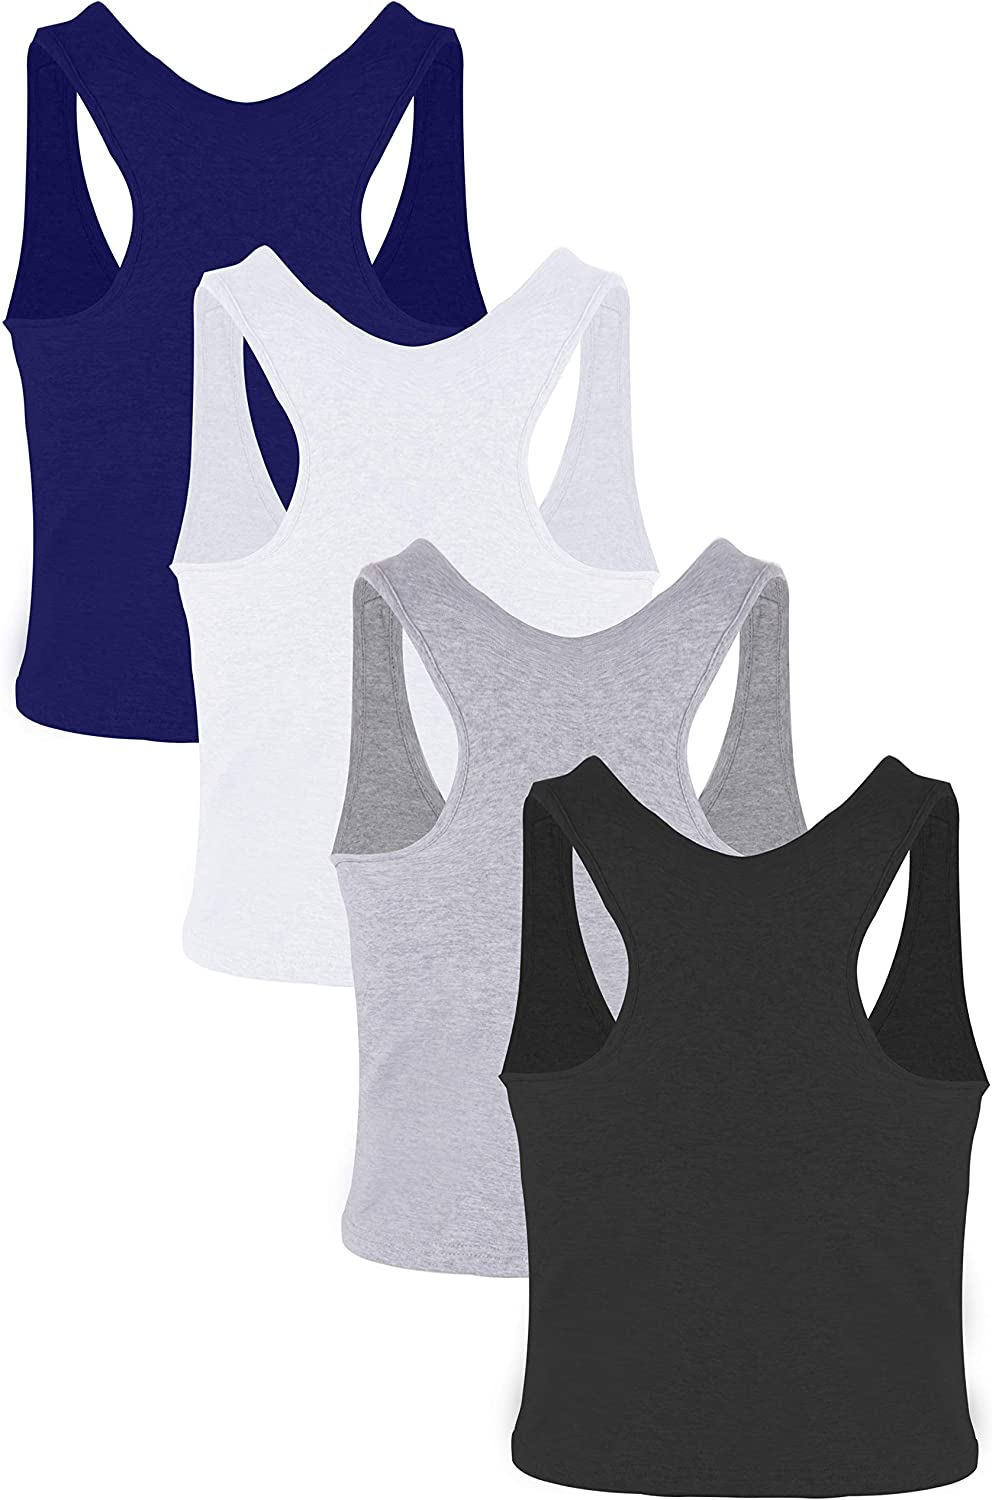 Suyye Women 4 Pieces Crop Tank Tops Yoga Raceback Sports Workout Bras Cotton Top